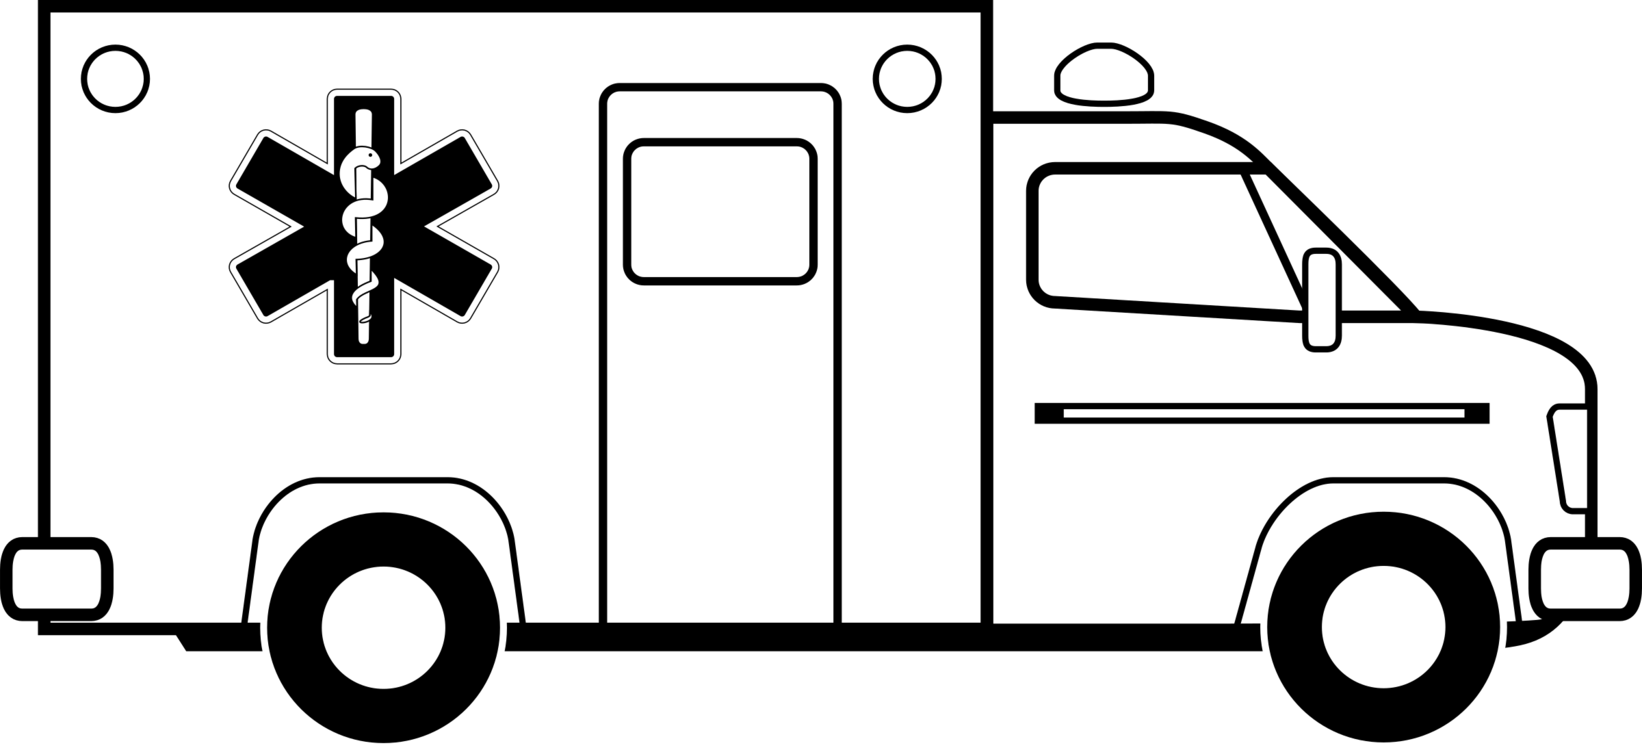 image library stock Ambulance medical services engine. 911 clipart fire emergency